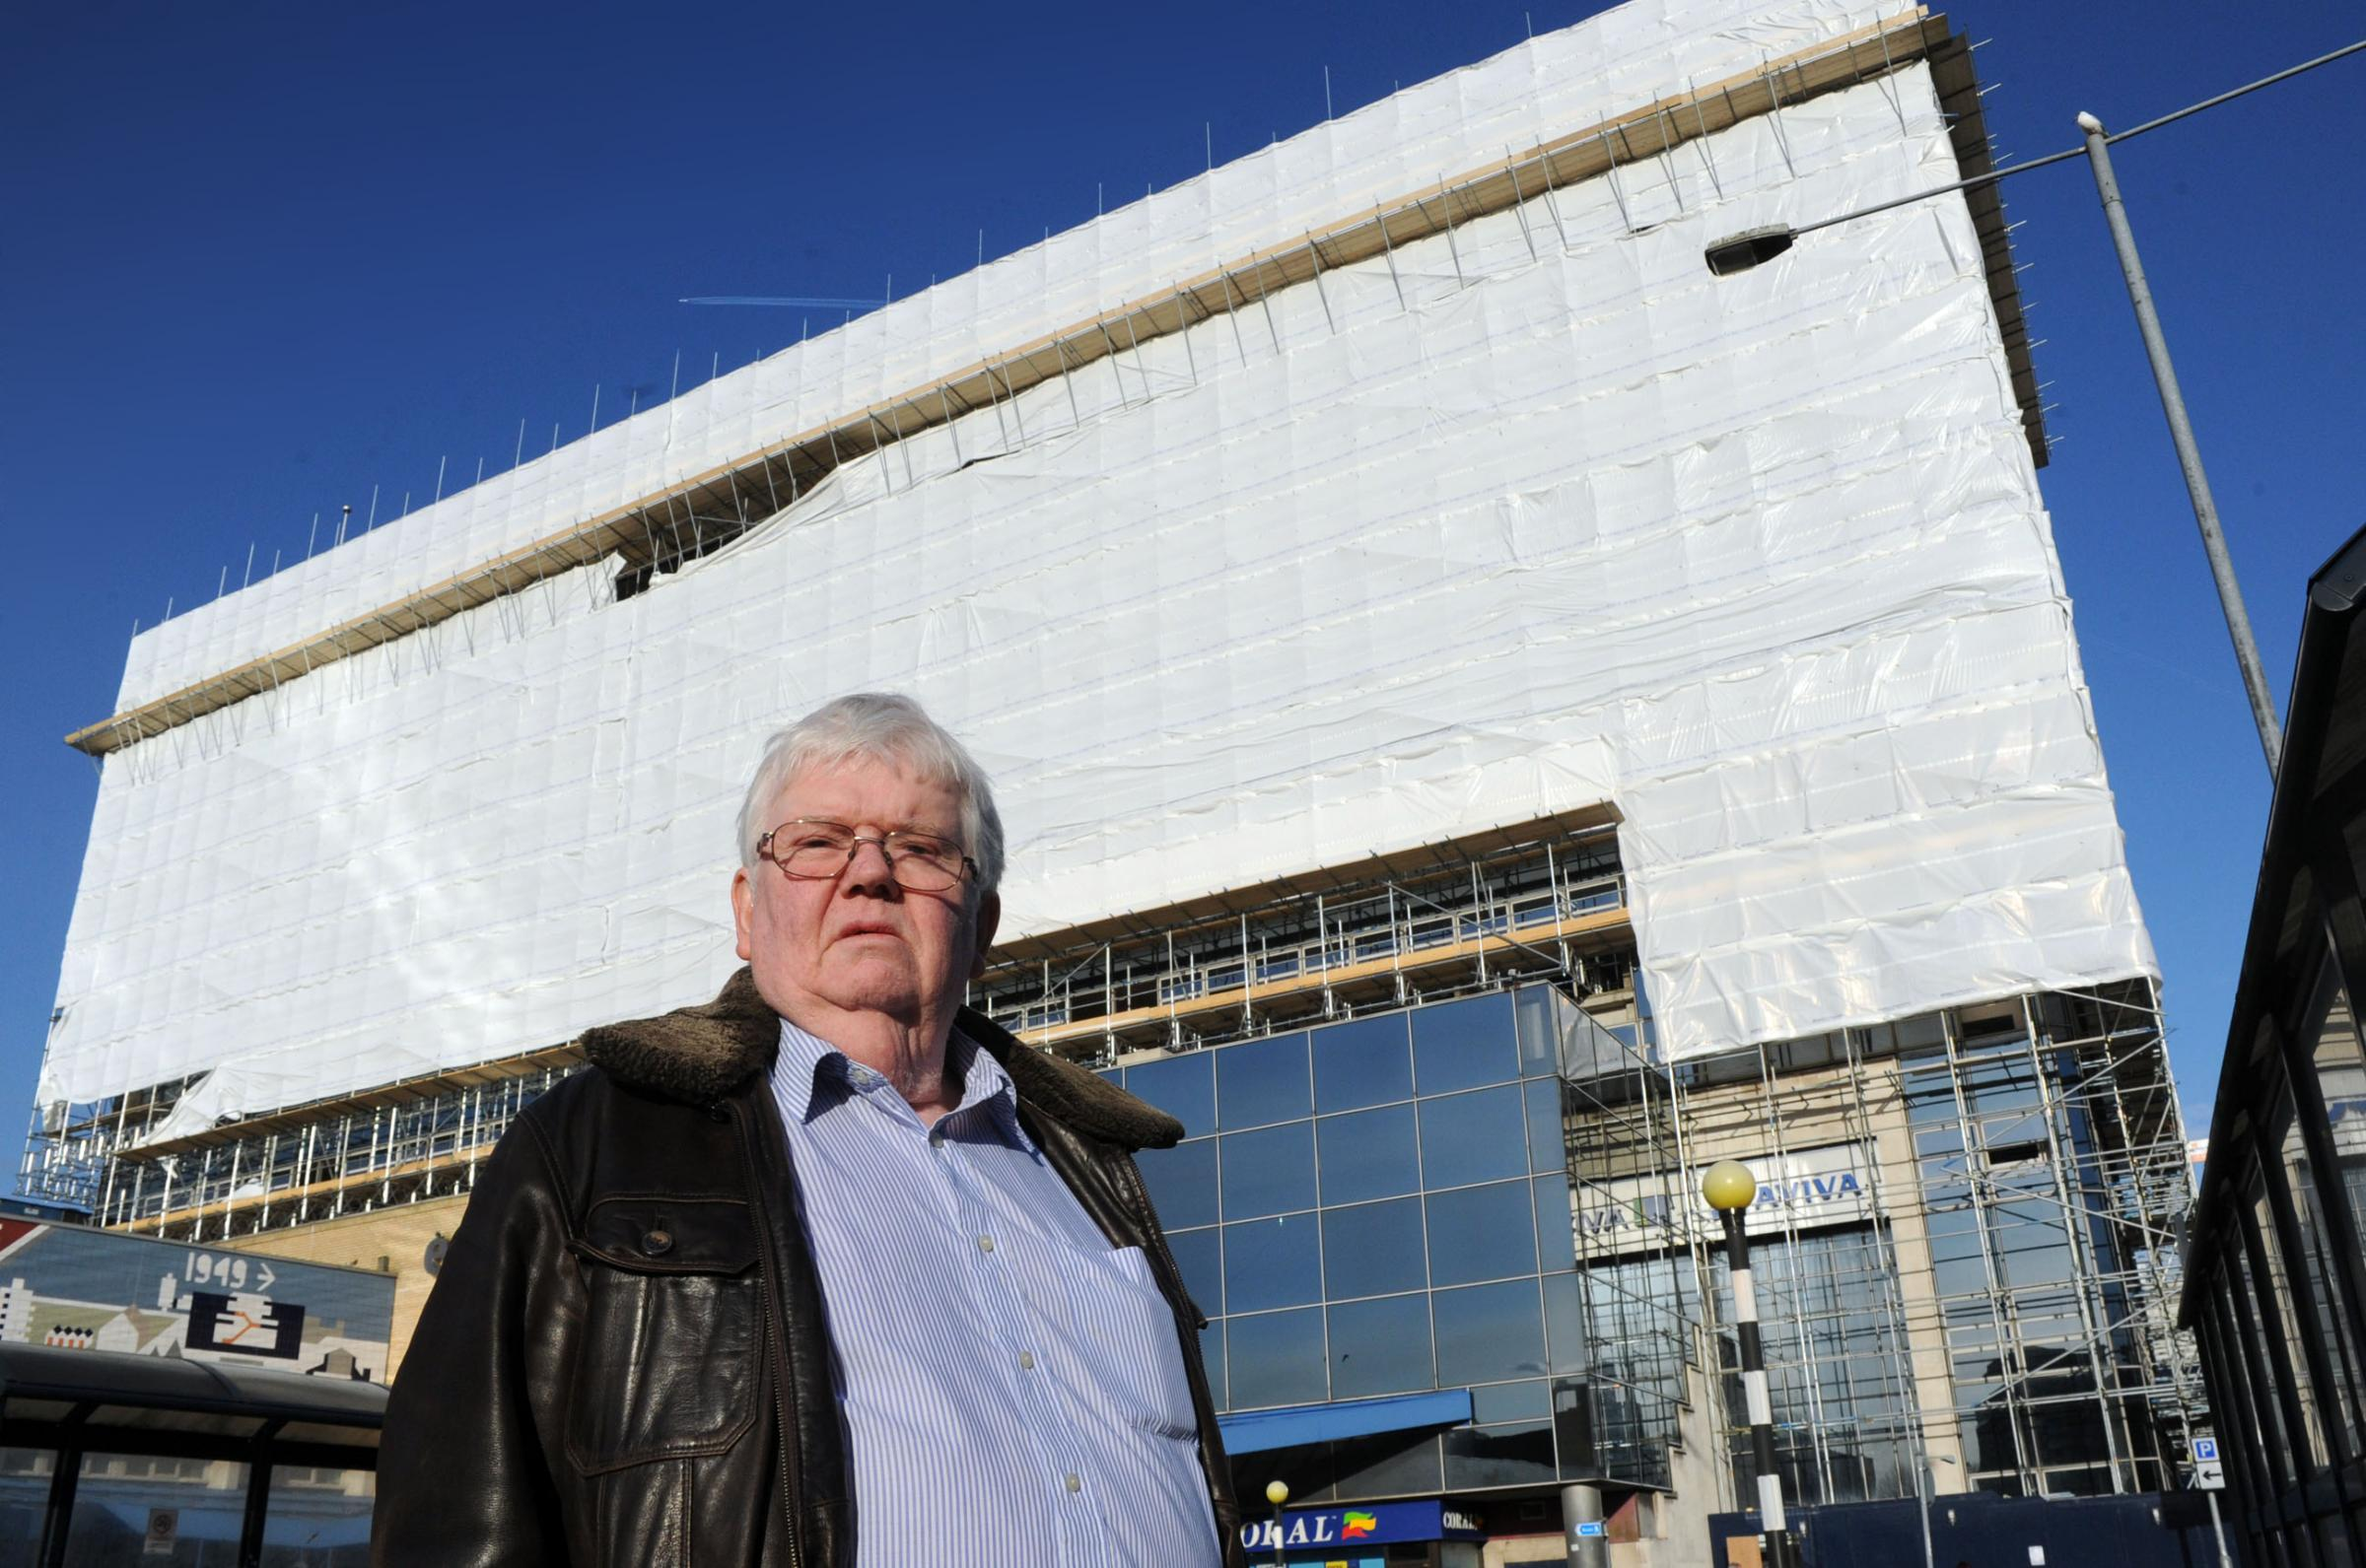 Phil Rackley outside the Aviva building